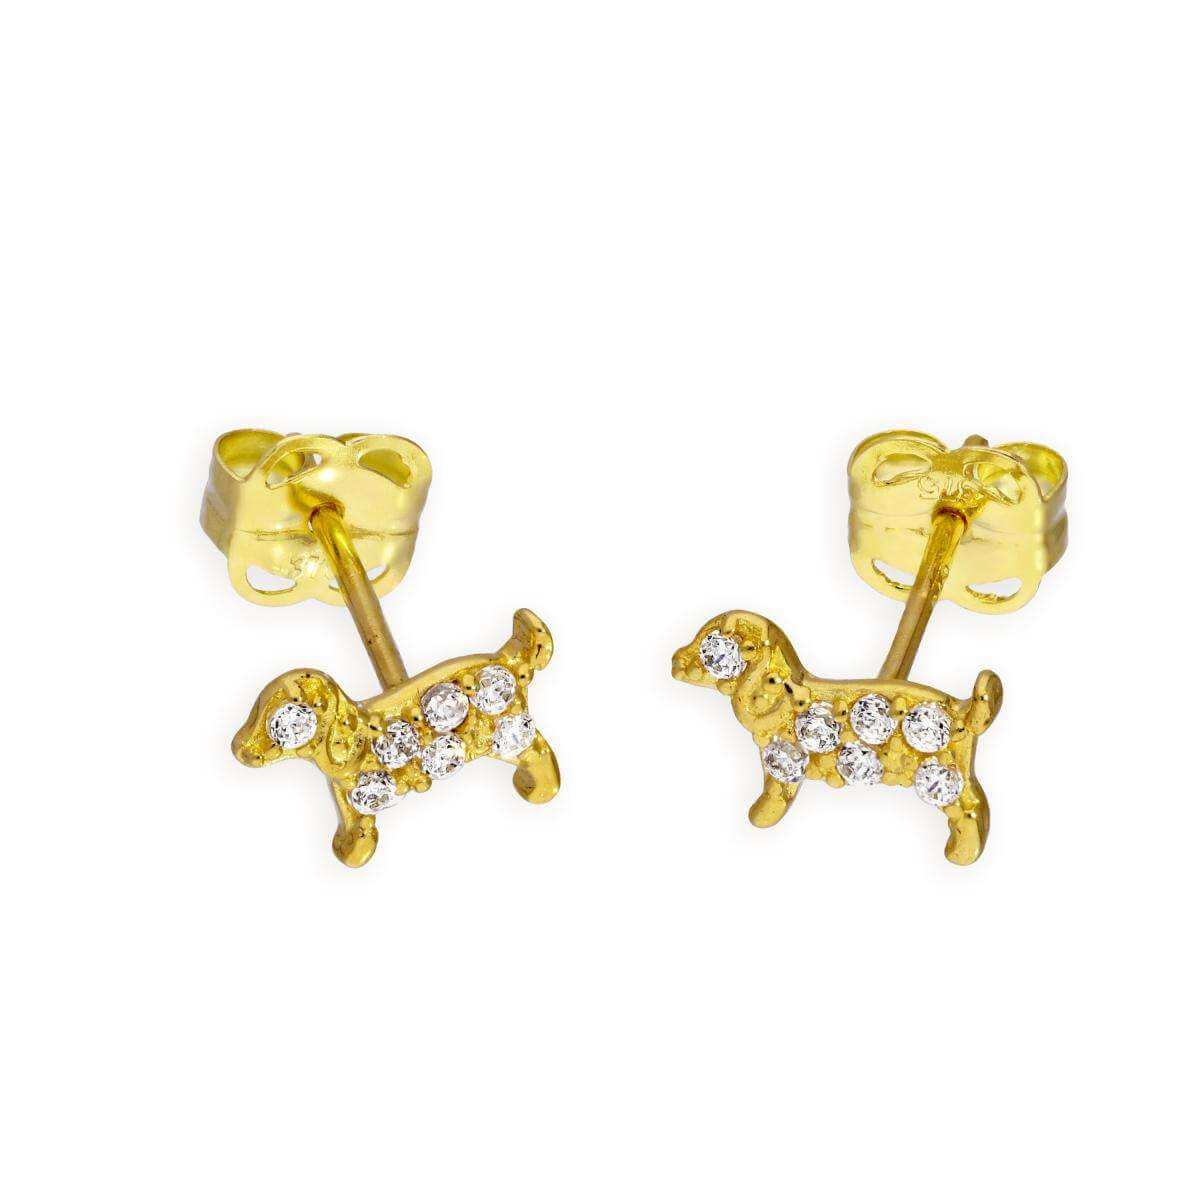 9ct Gold & Clear CZ Crystal Dog Stud Earrings